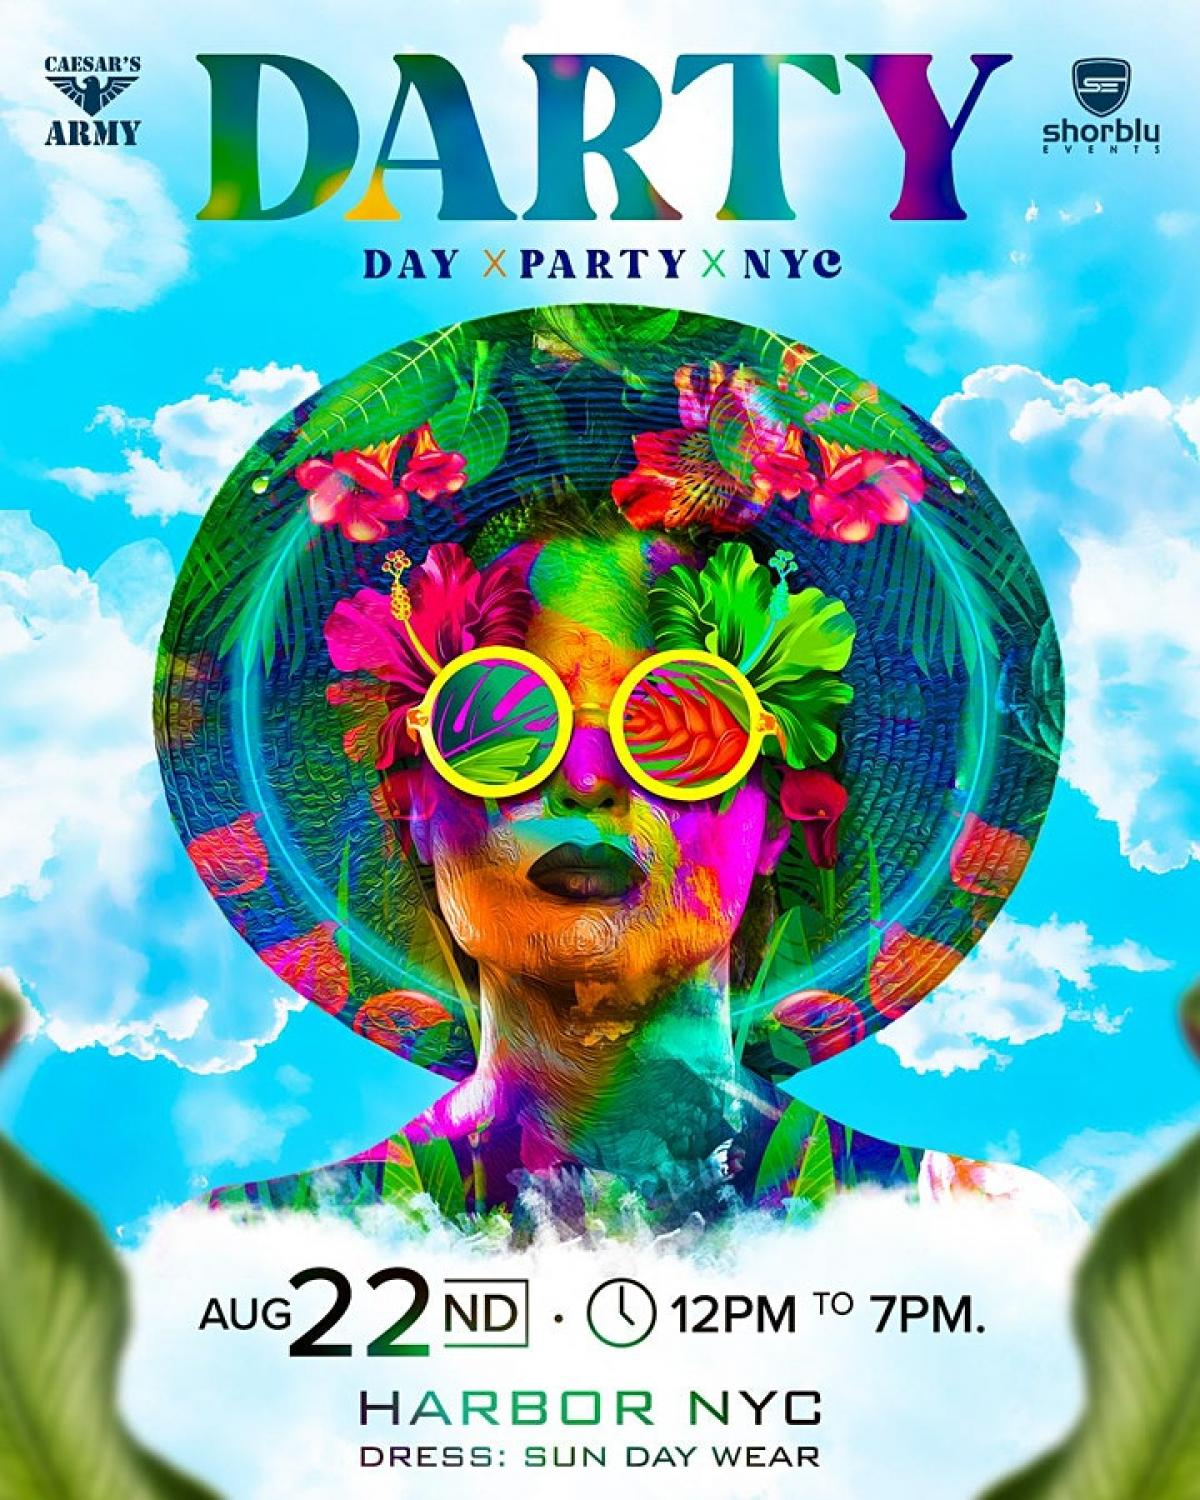 DARTY | Day x Party x NYC flyer or graphic.